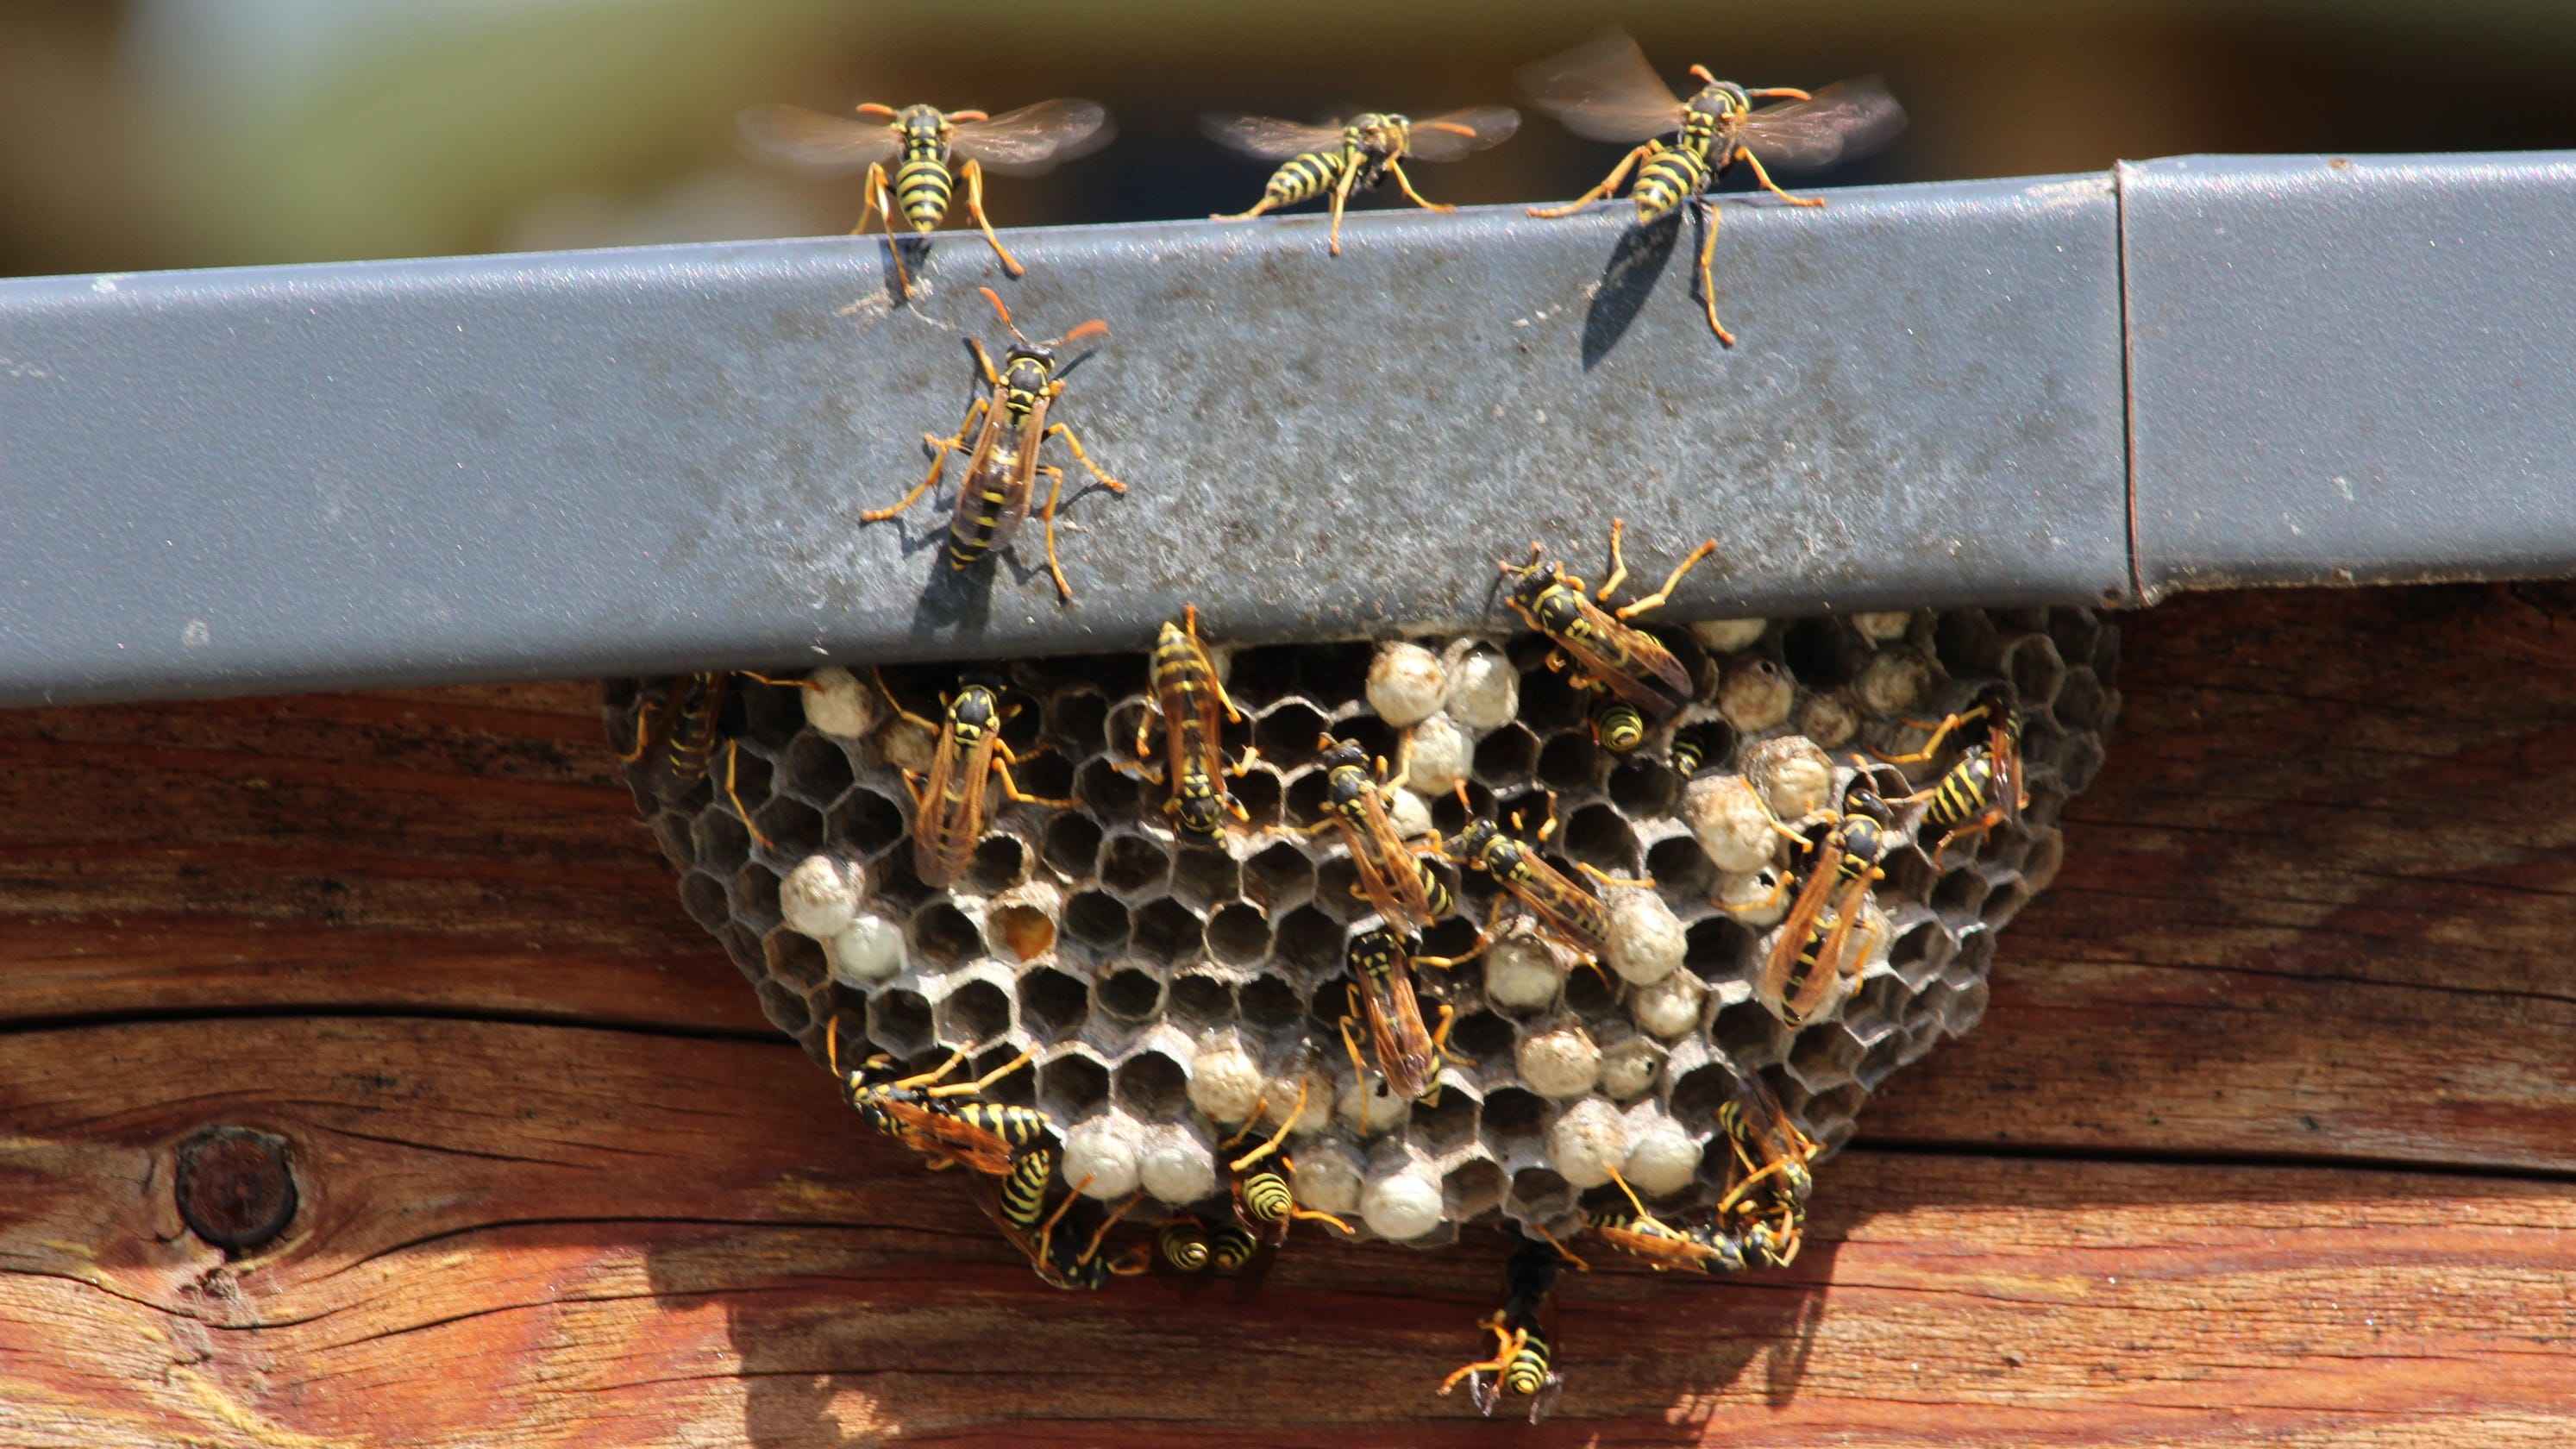 Angry wasps help police nab fleeing fugitive in Germany